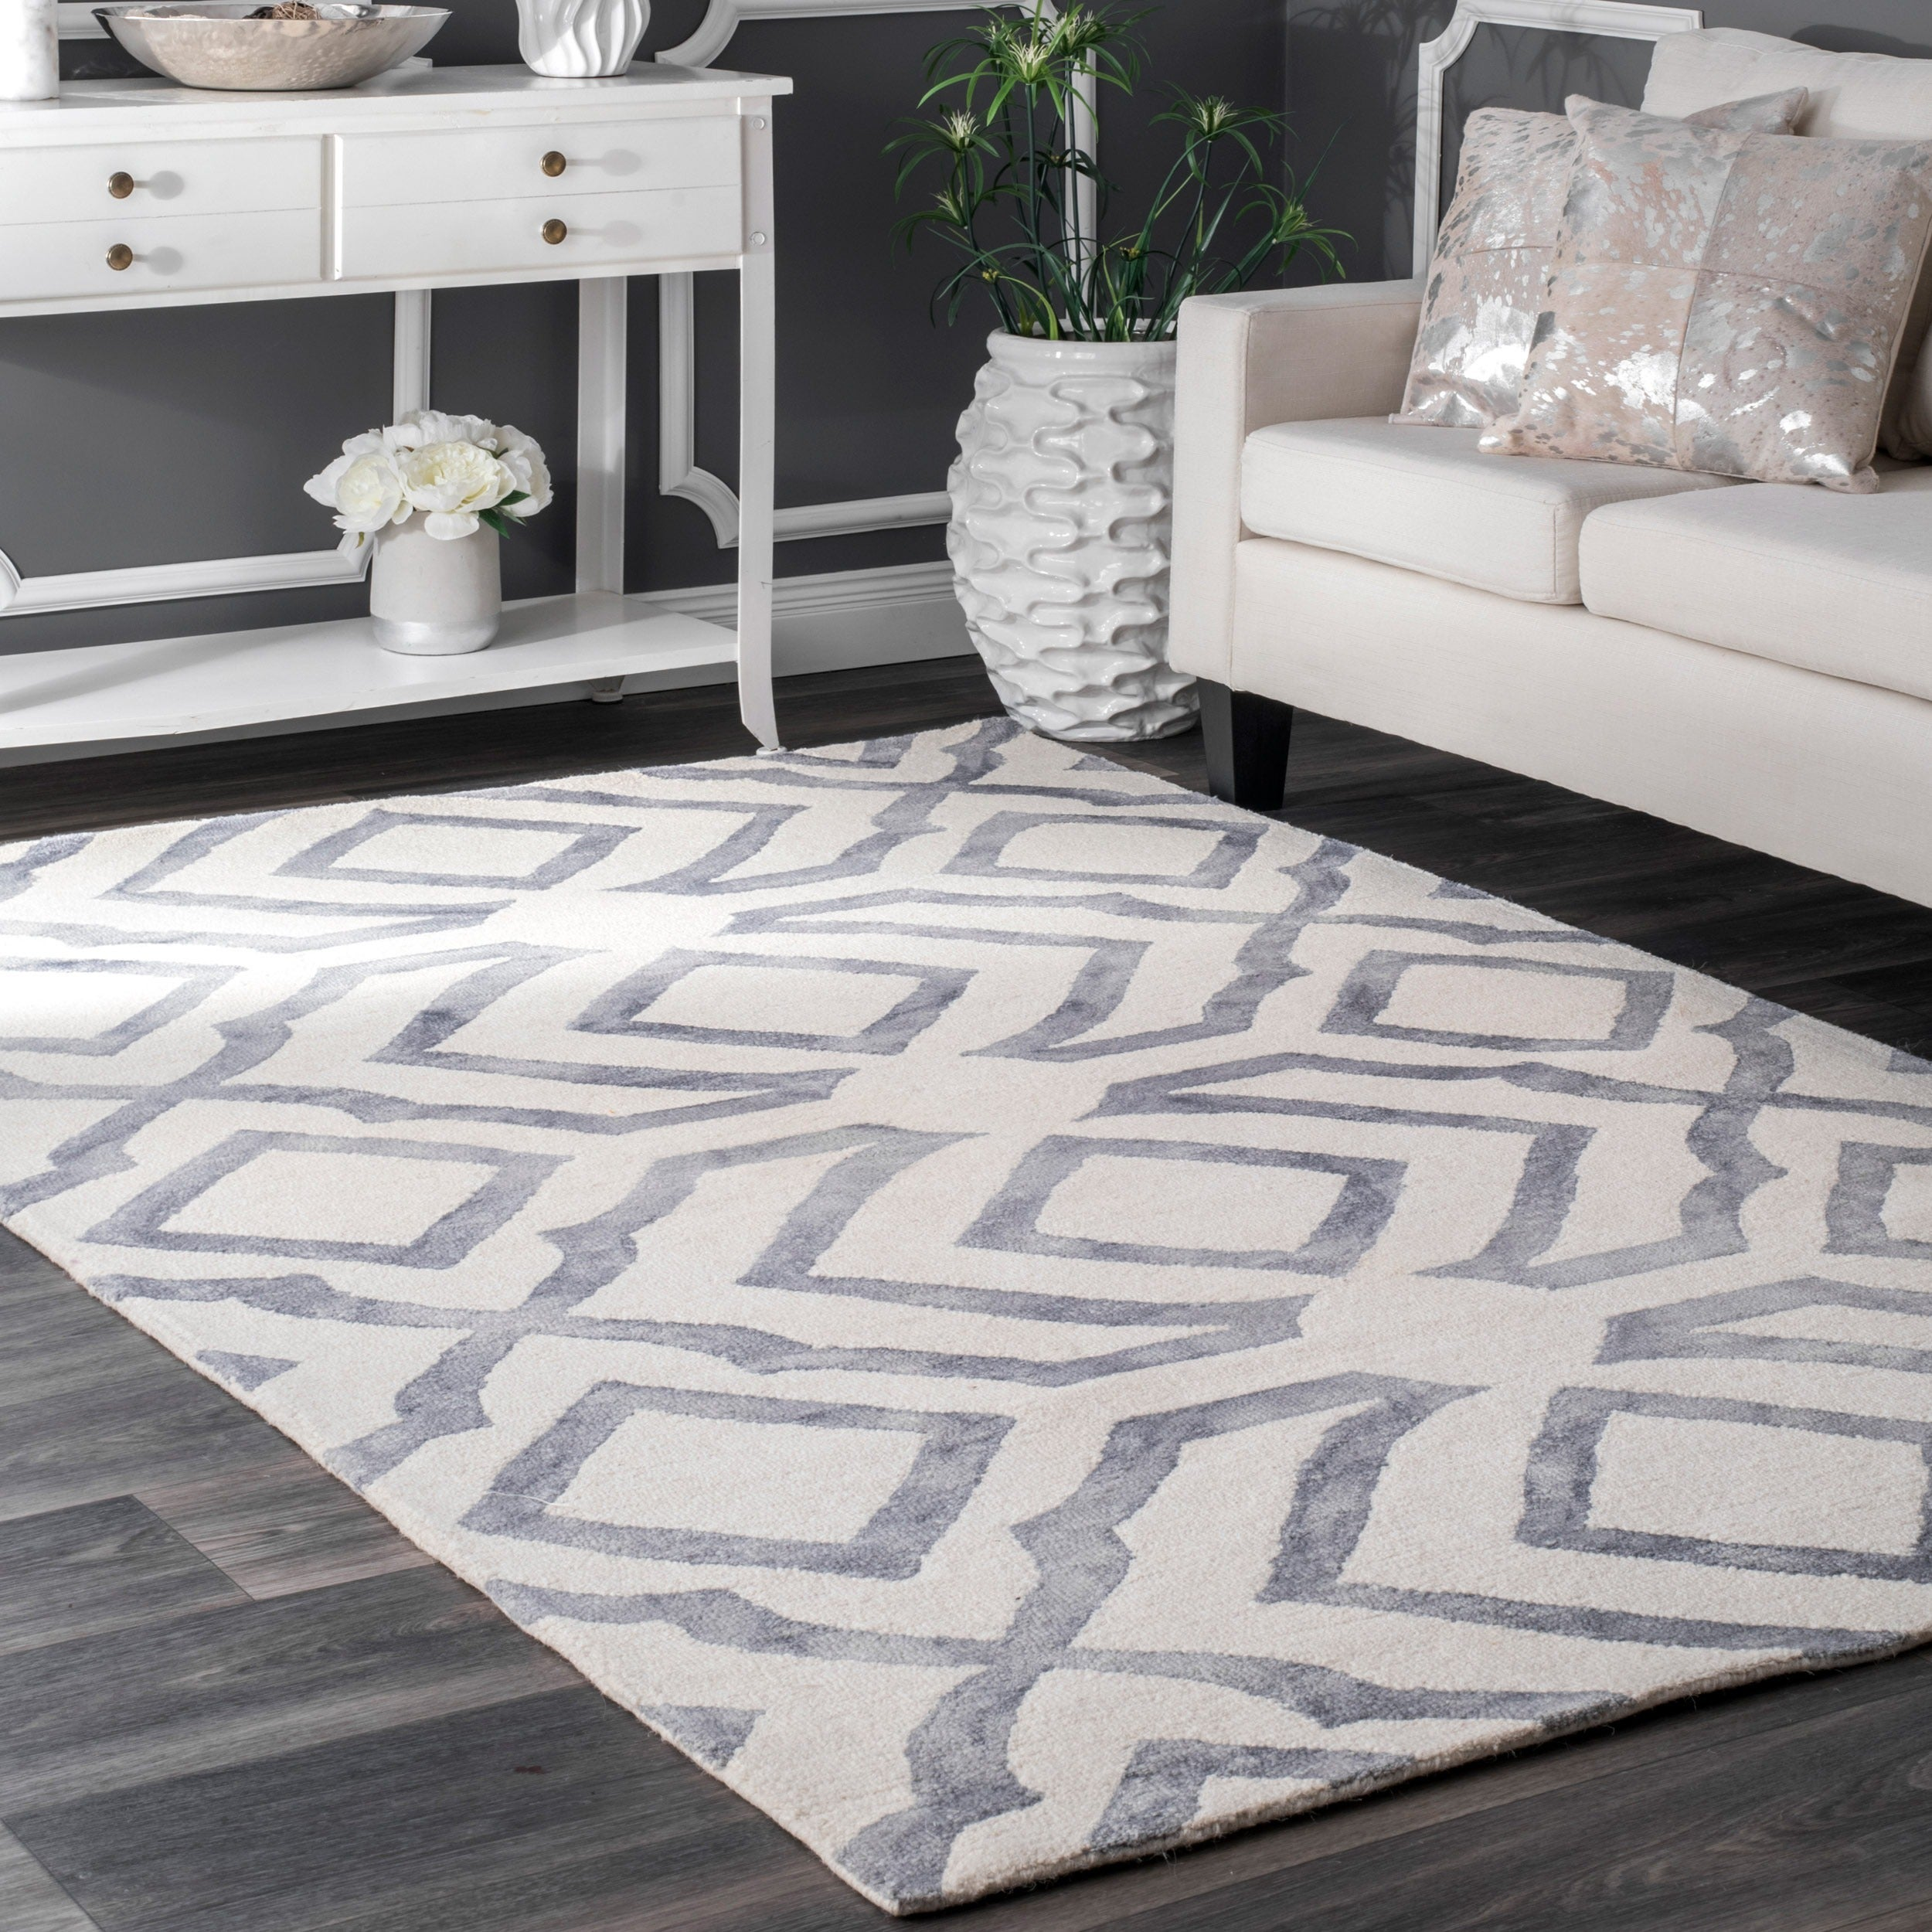 NuLOOM Contemporary Handmade Abstract Wool Rug 5x27